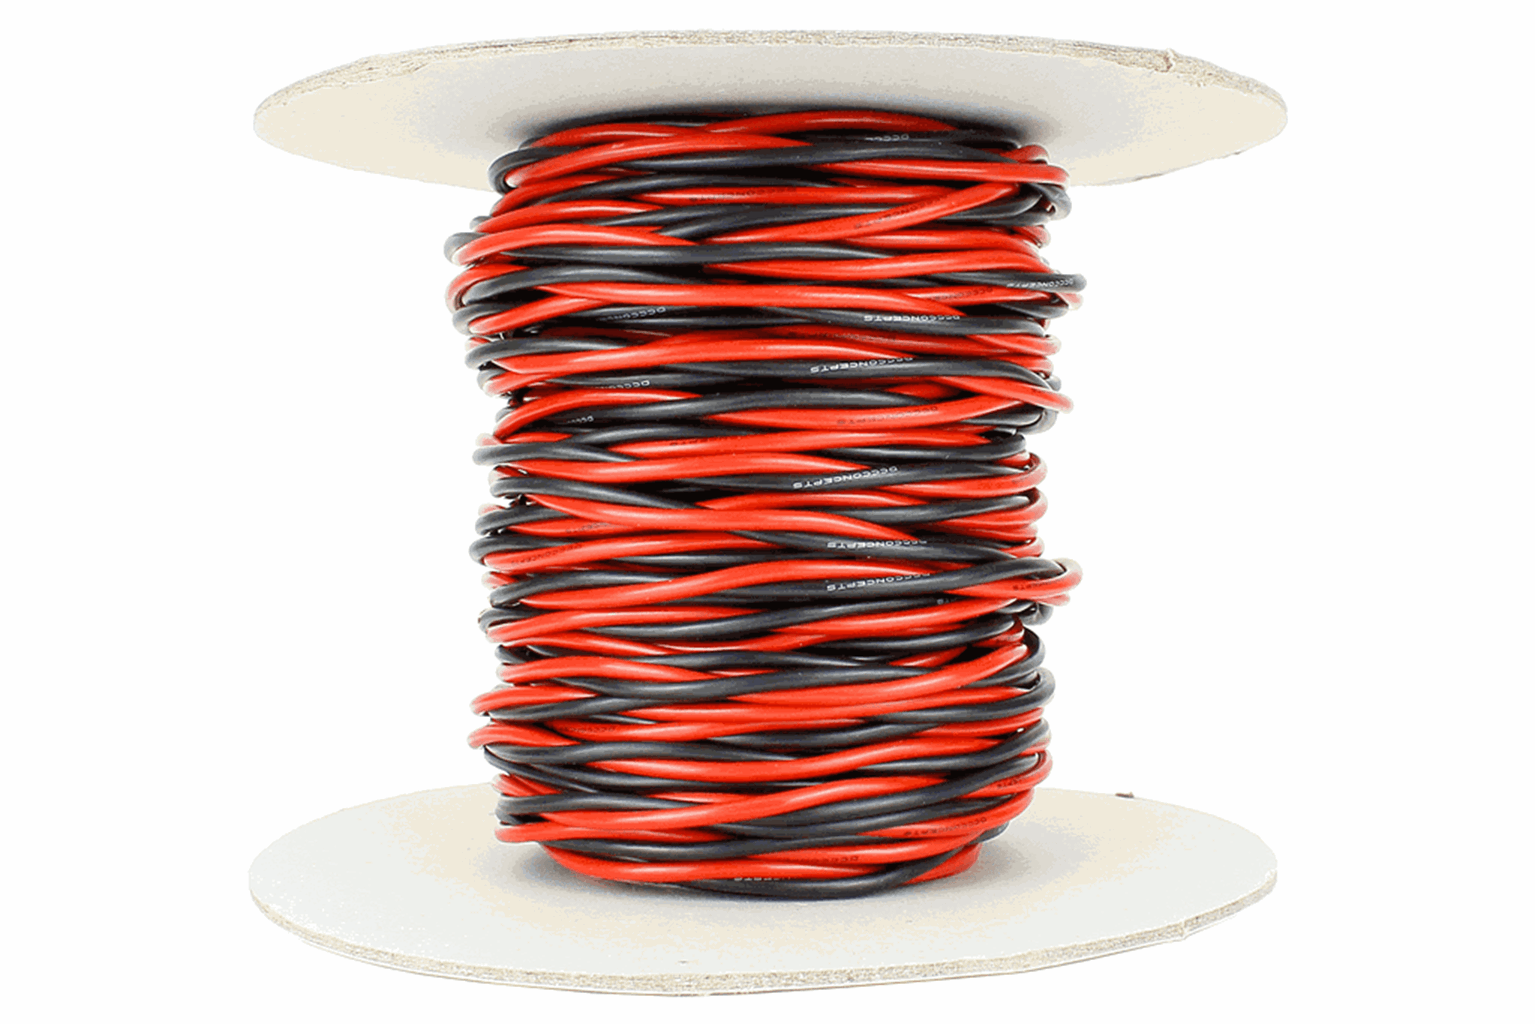 Twisted Bus Wire 25m of 2.5mm (13g) Twin Red/Black